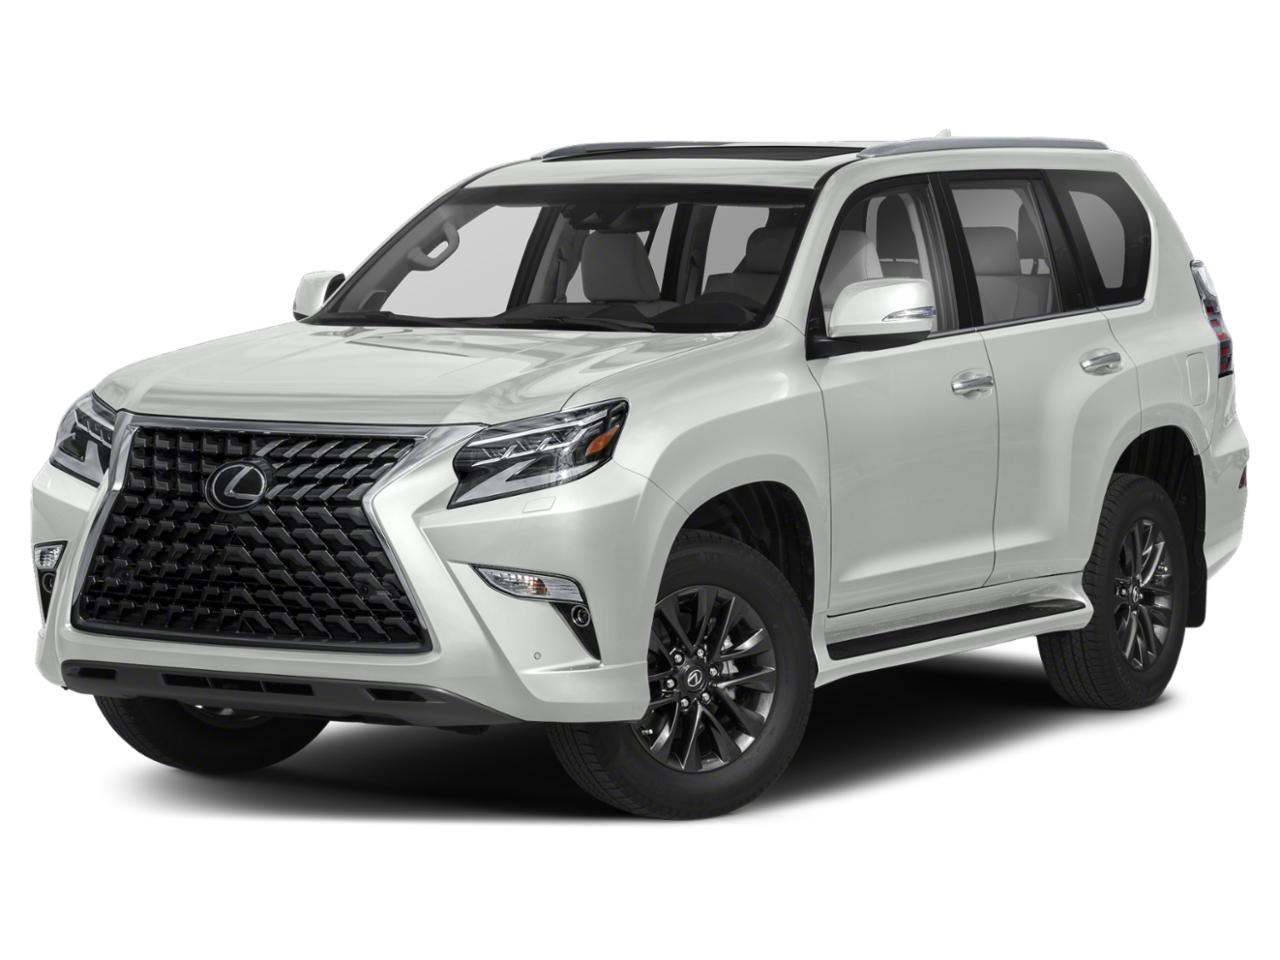 2020 Lexus GX Vehicle Photo in Appleton, WI 54913